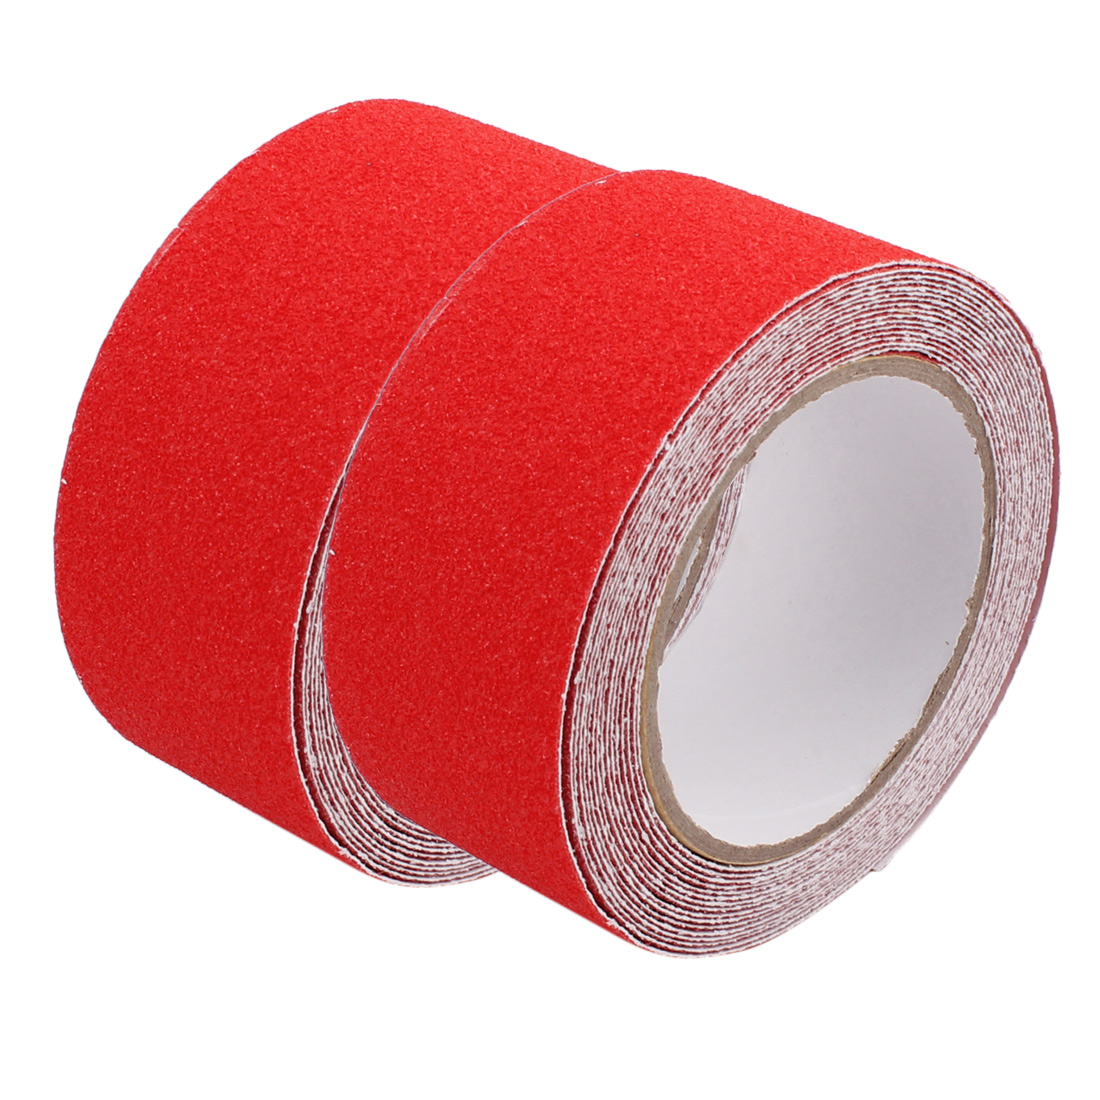 2Pcs Red Anti-Slip Grip Tape Safety High Traction Indoor Outdoor 50mmx5m